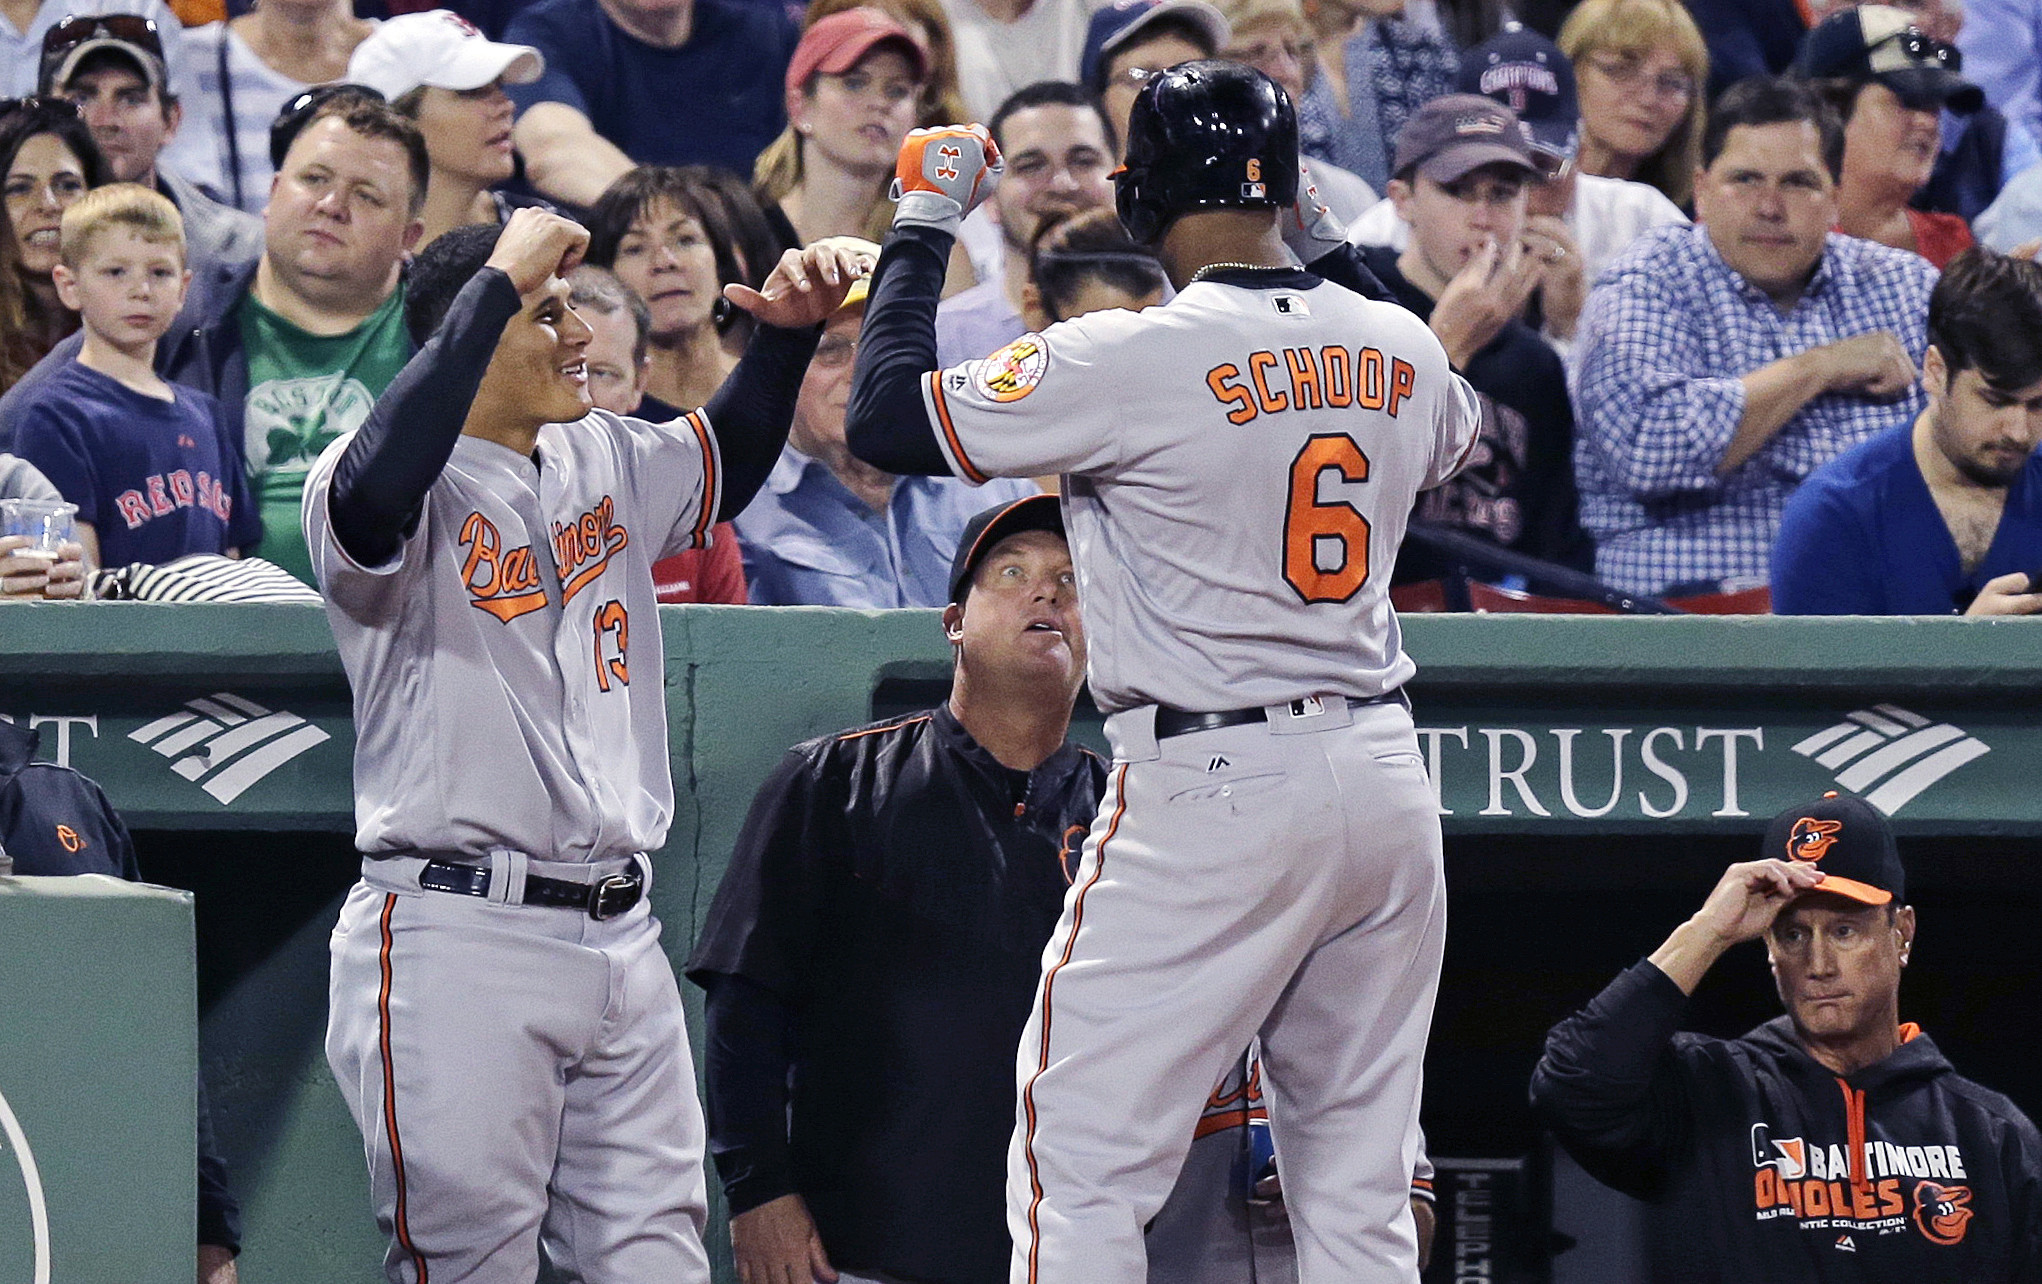 Bal-the-orioles-in-becoming-first-team-to-100-home-runs-nearing-season-record-pace-20160615